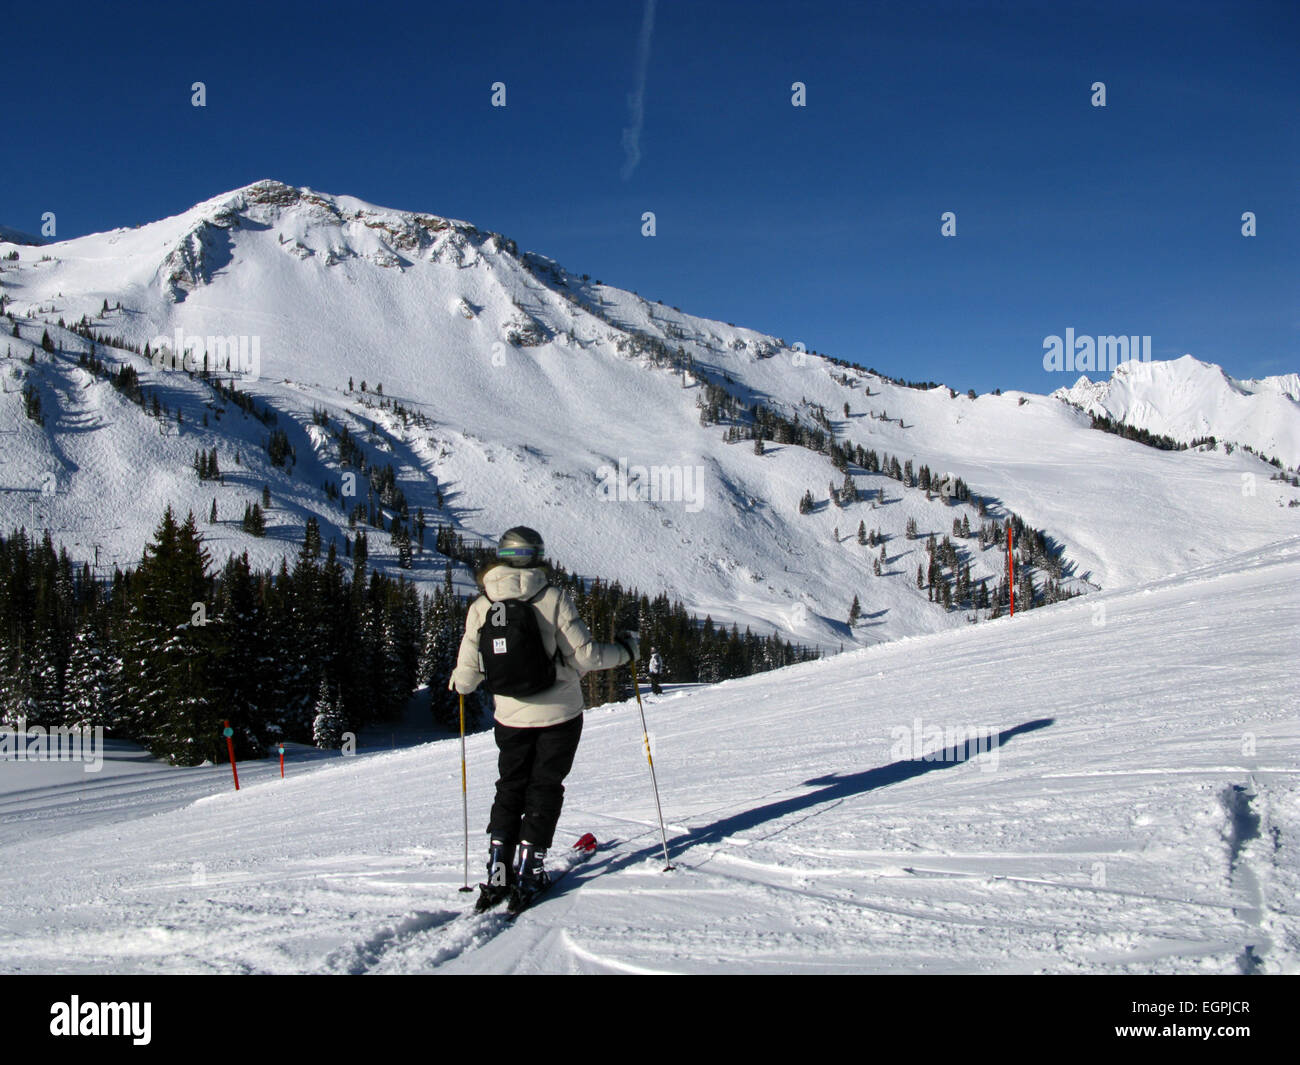 alta ski resort, utah, little cottonwood canyon, wasatch mountain